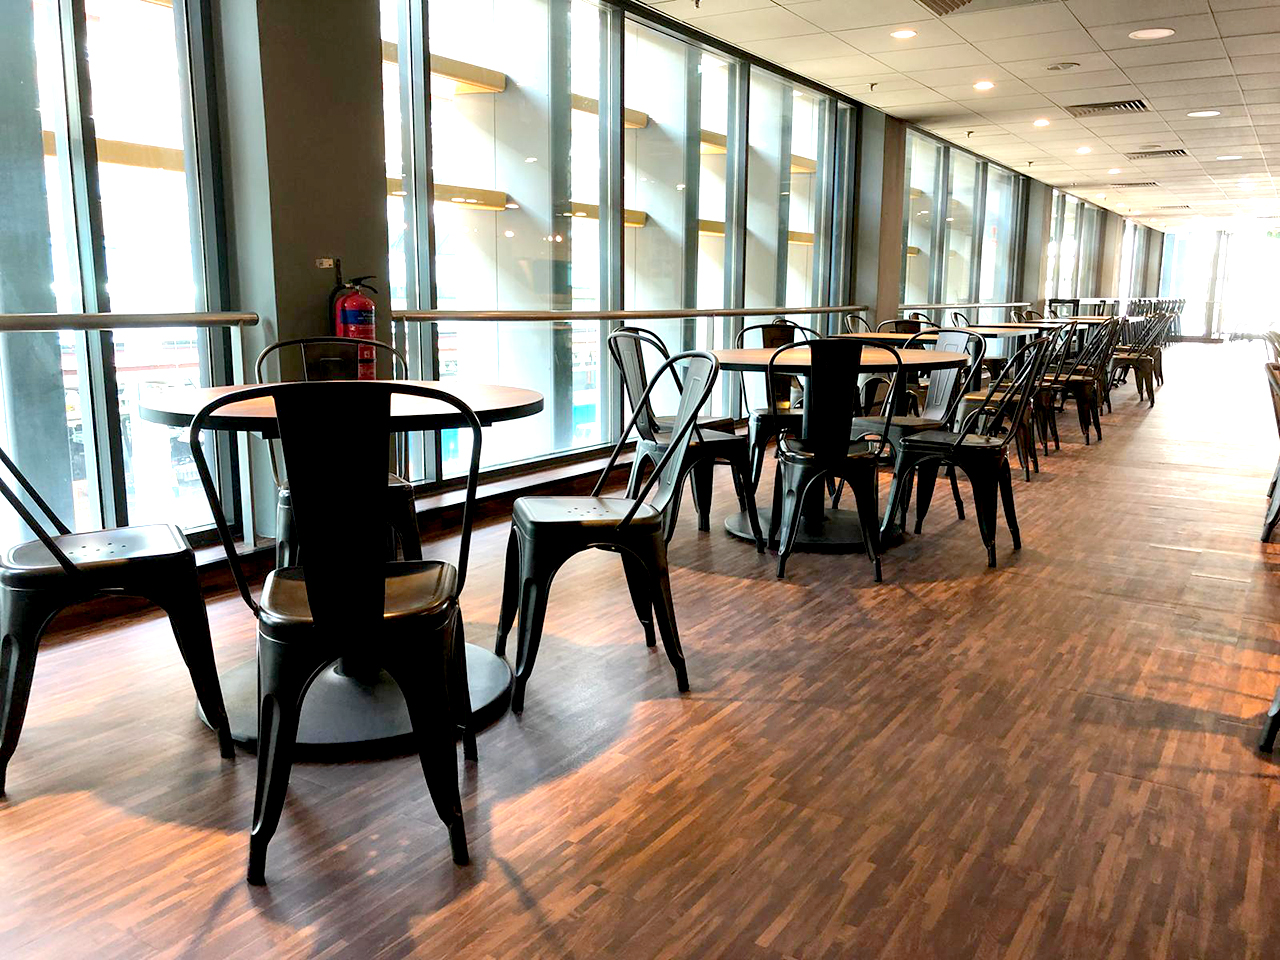 SATS Maintenance Centre - Changi North | Product Seen: Dojo Sidechair - Steel & Customisable Laminated Tabletop + Cosson Table Base]